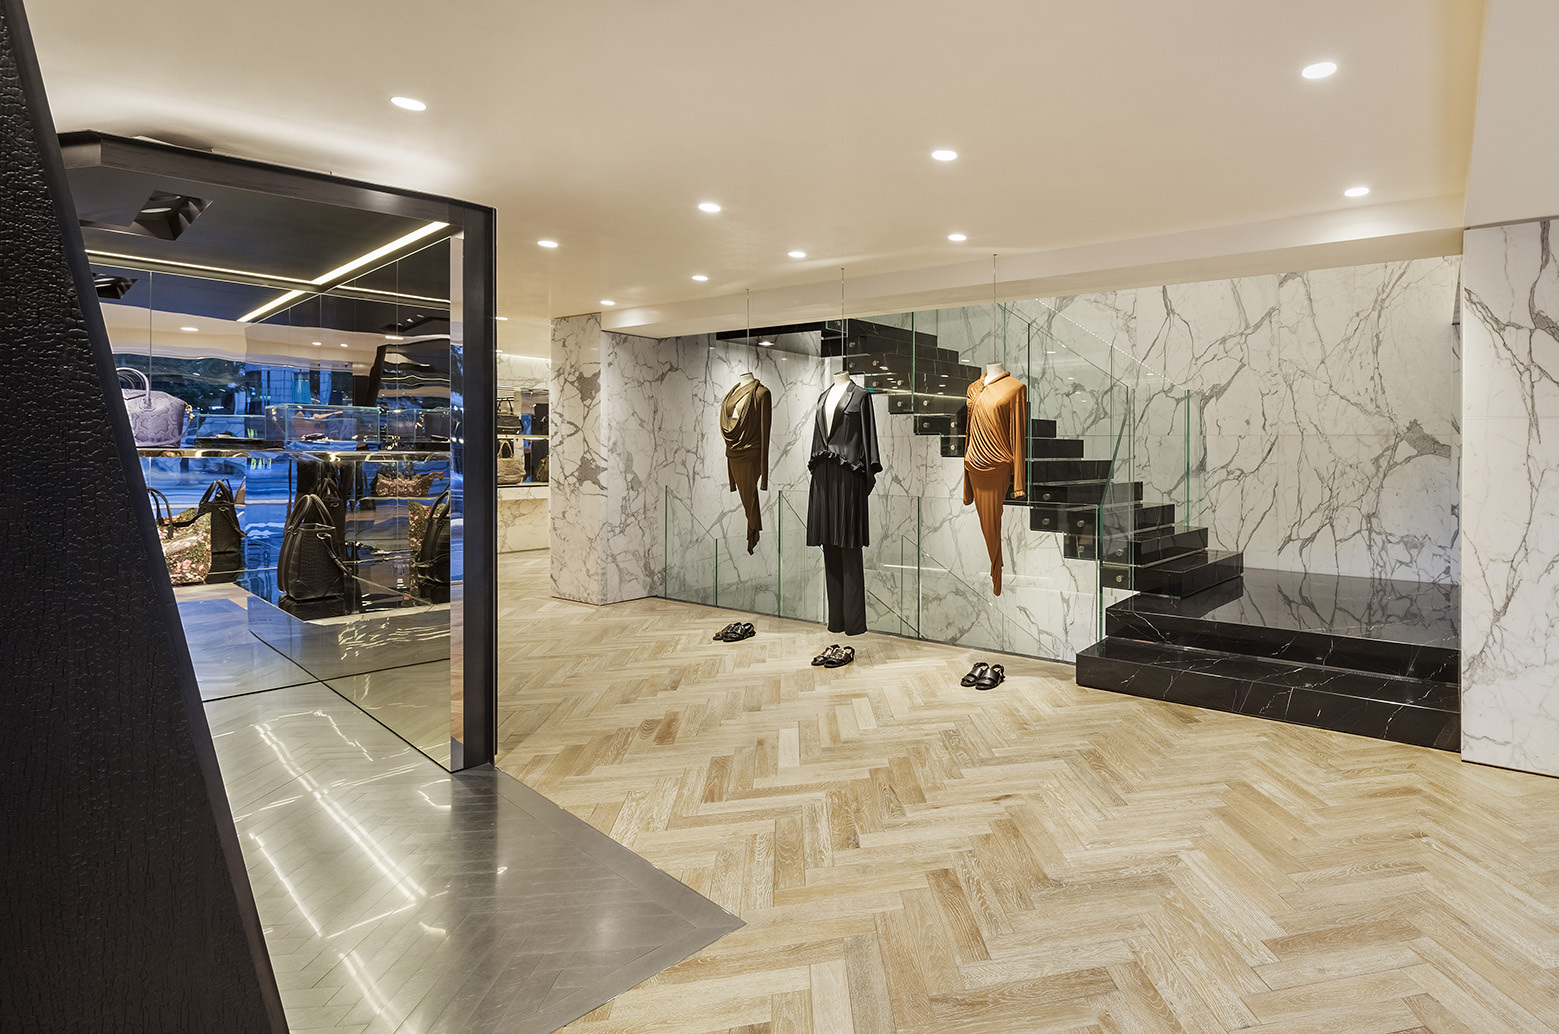 givenchy-flagship-store-in-seoul-piuarch-02